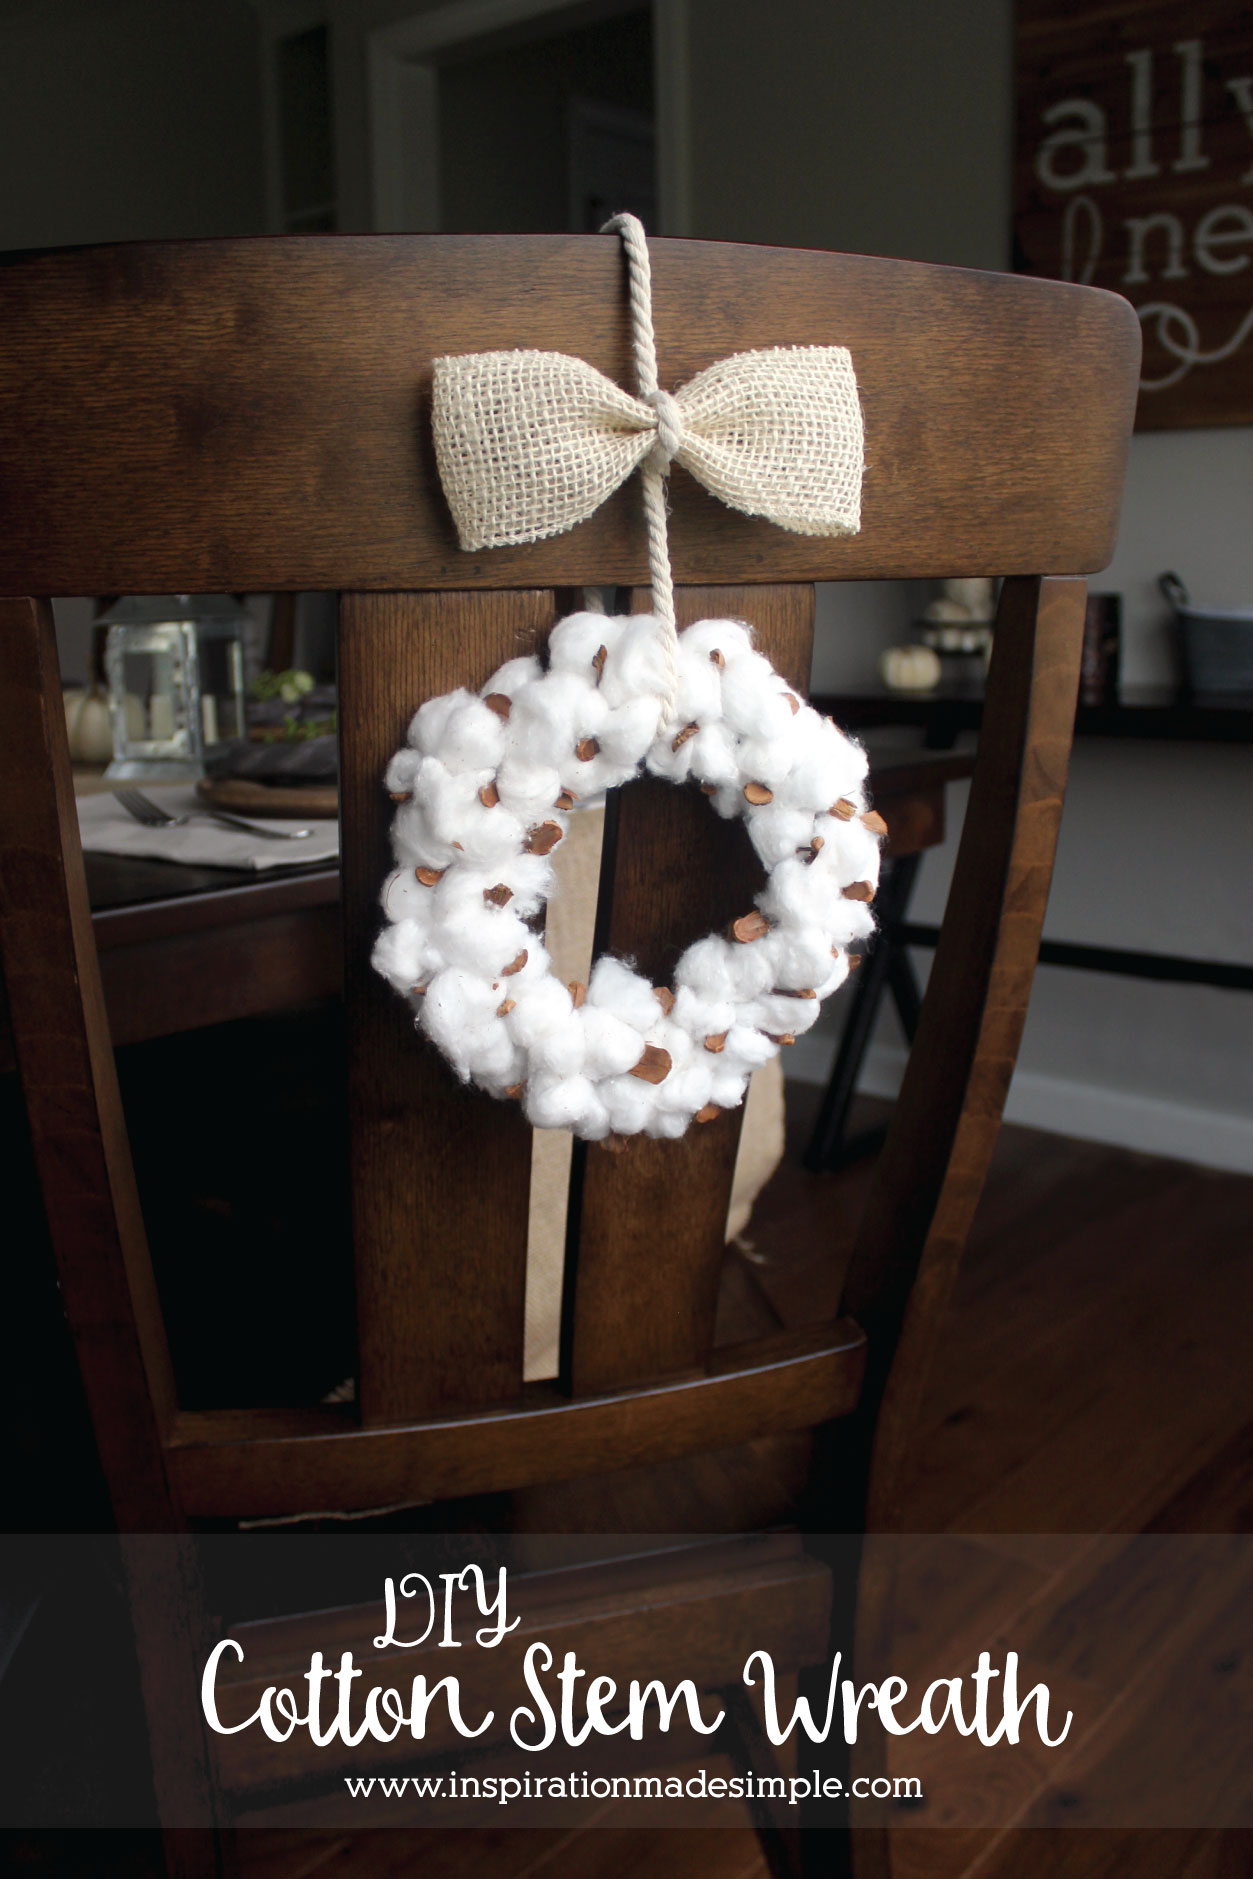 DIY Cotton Stem Wreath Tutorial